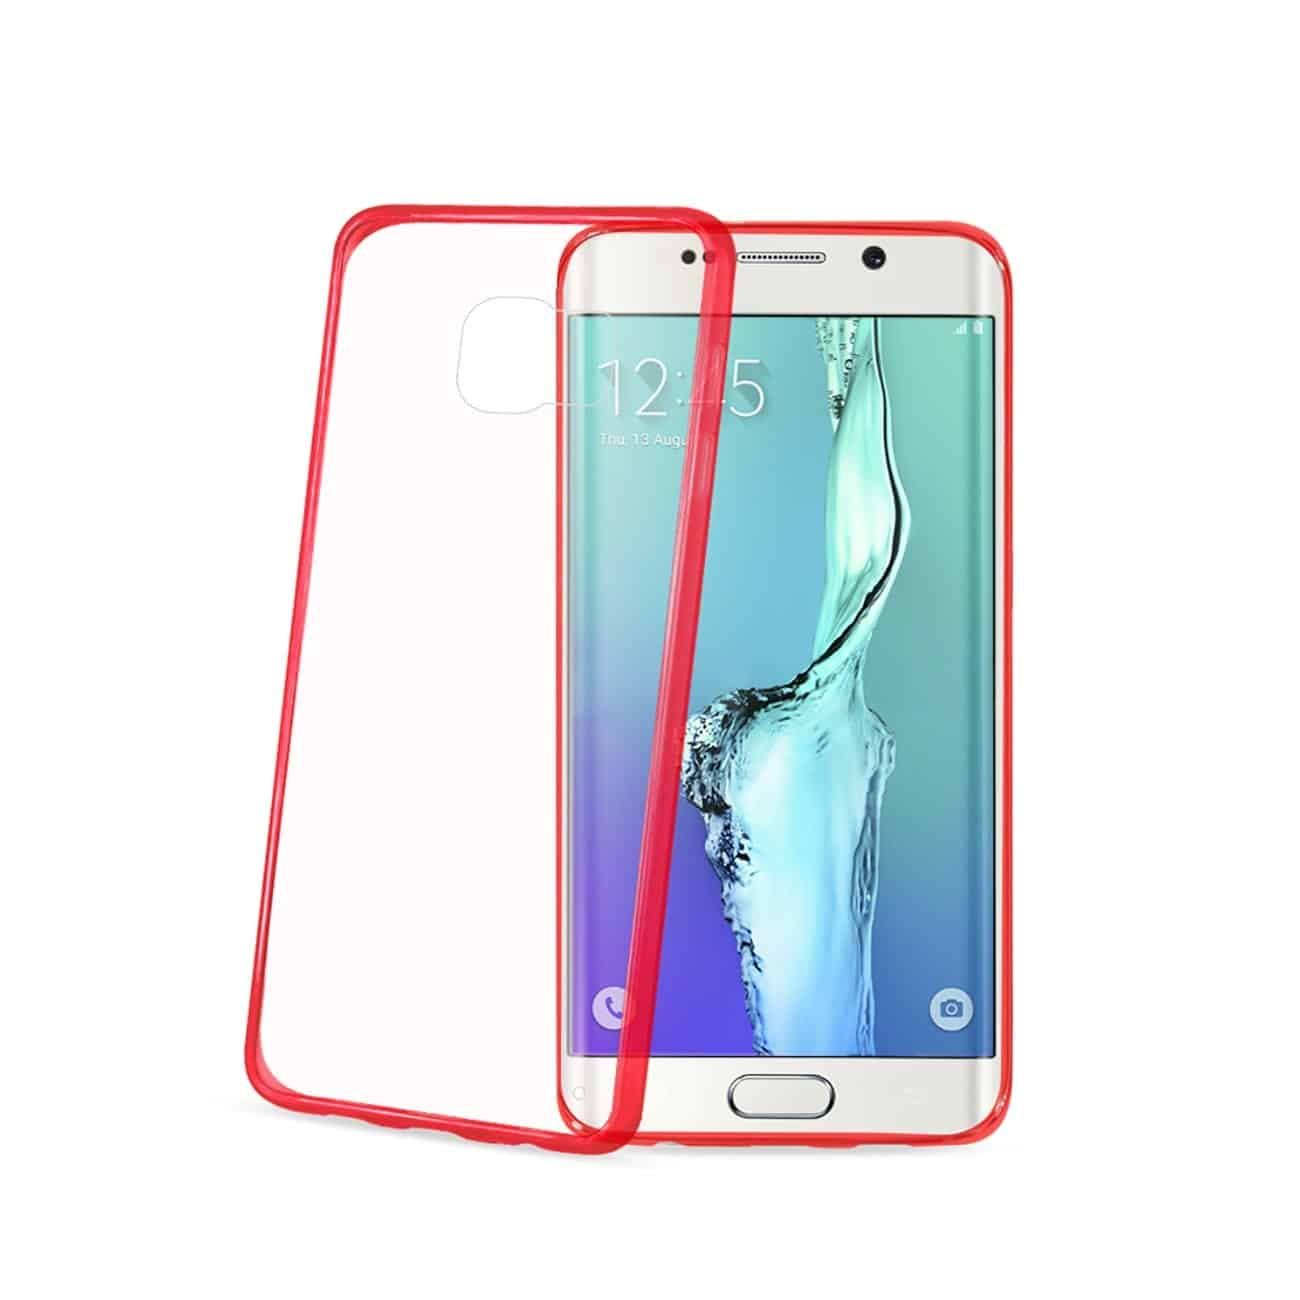 SAMSUNG GALAXY S6 EDGE PLUS CLEAR BACK FRAME BUMPER CASE IN RED